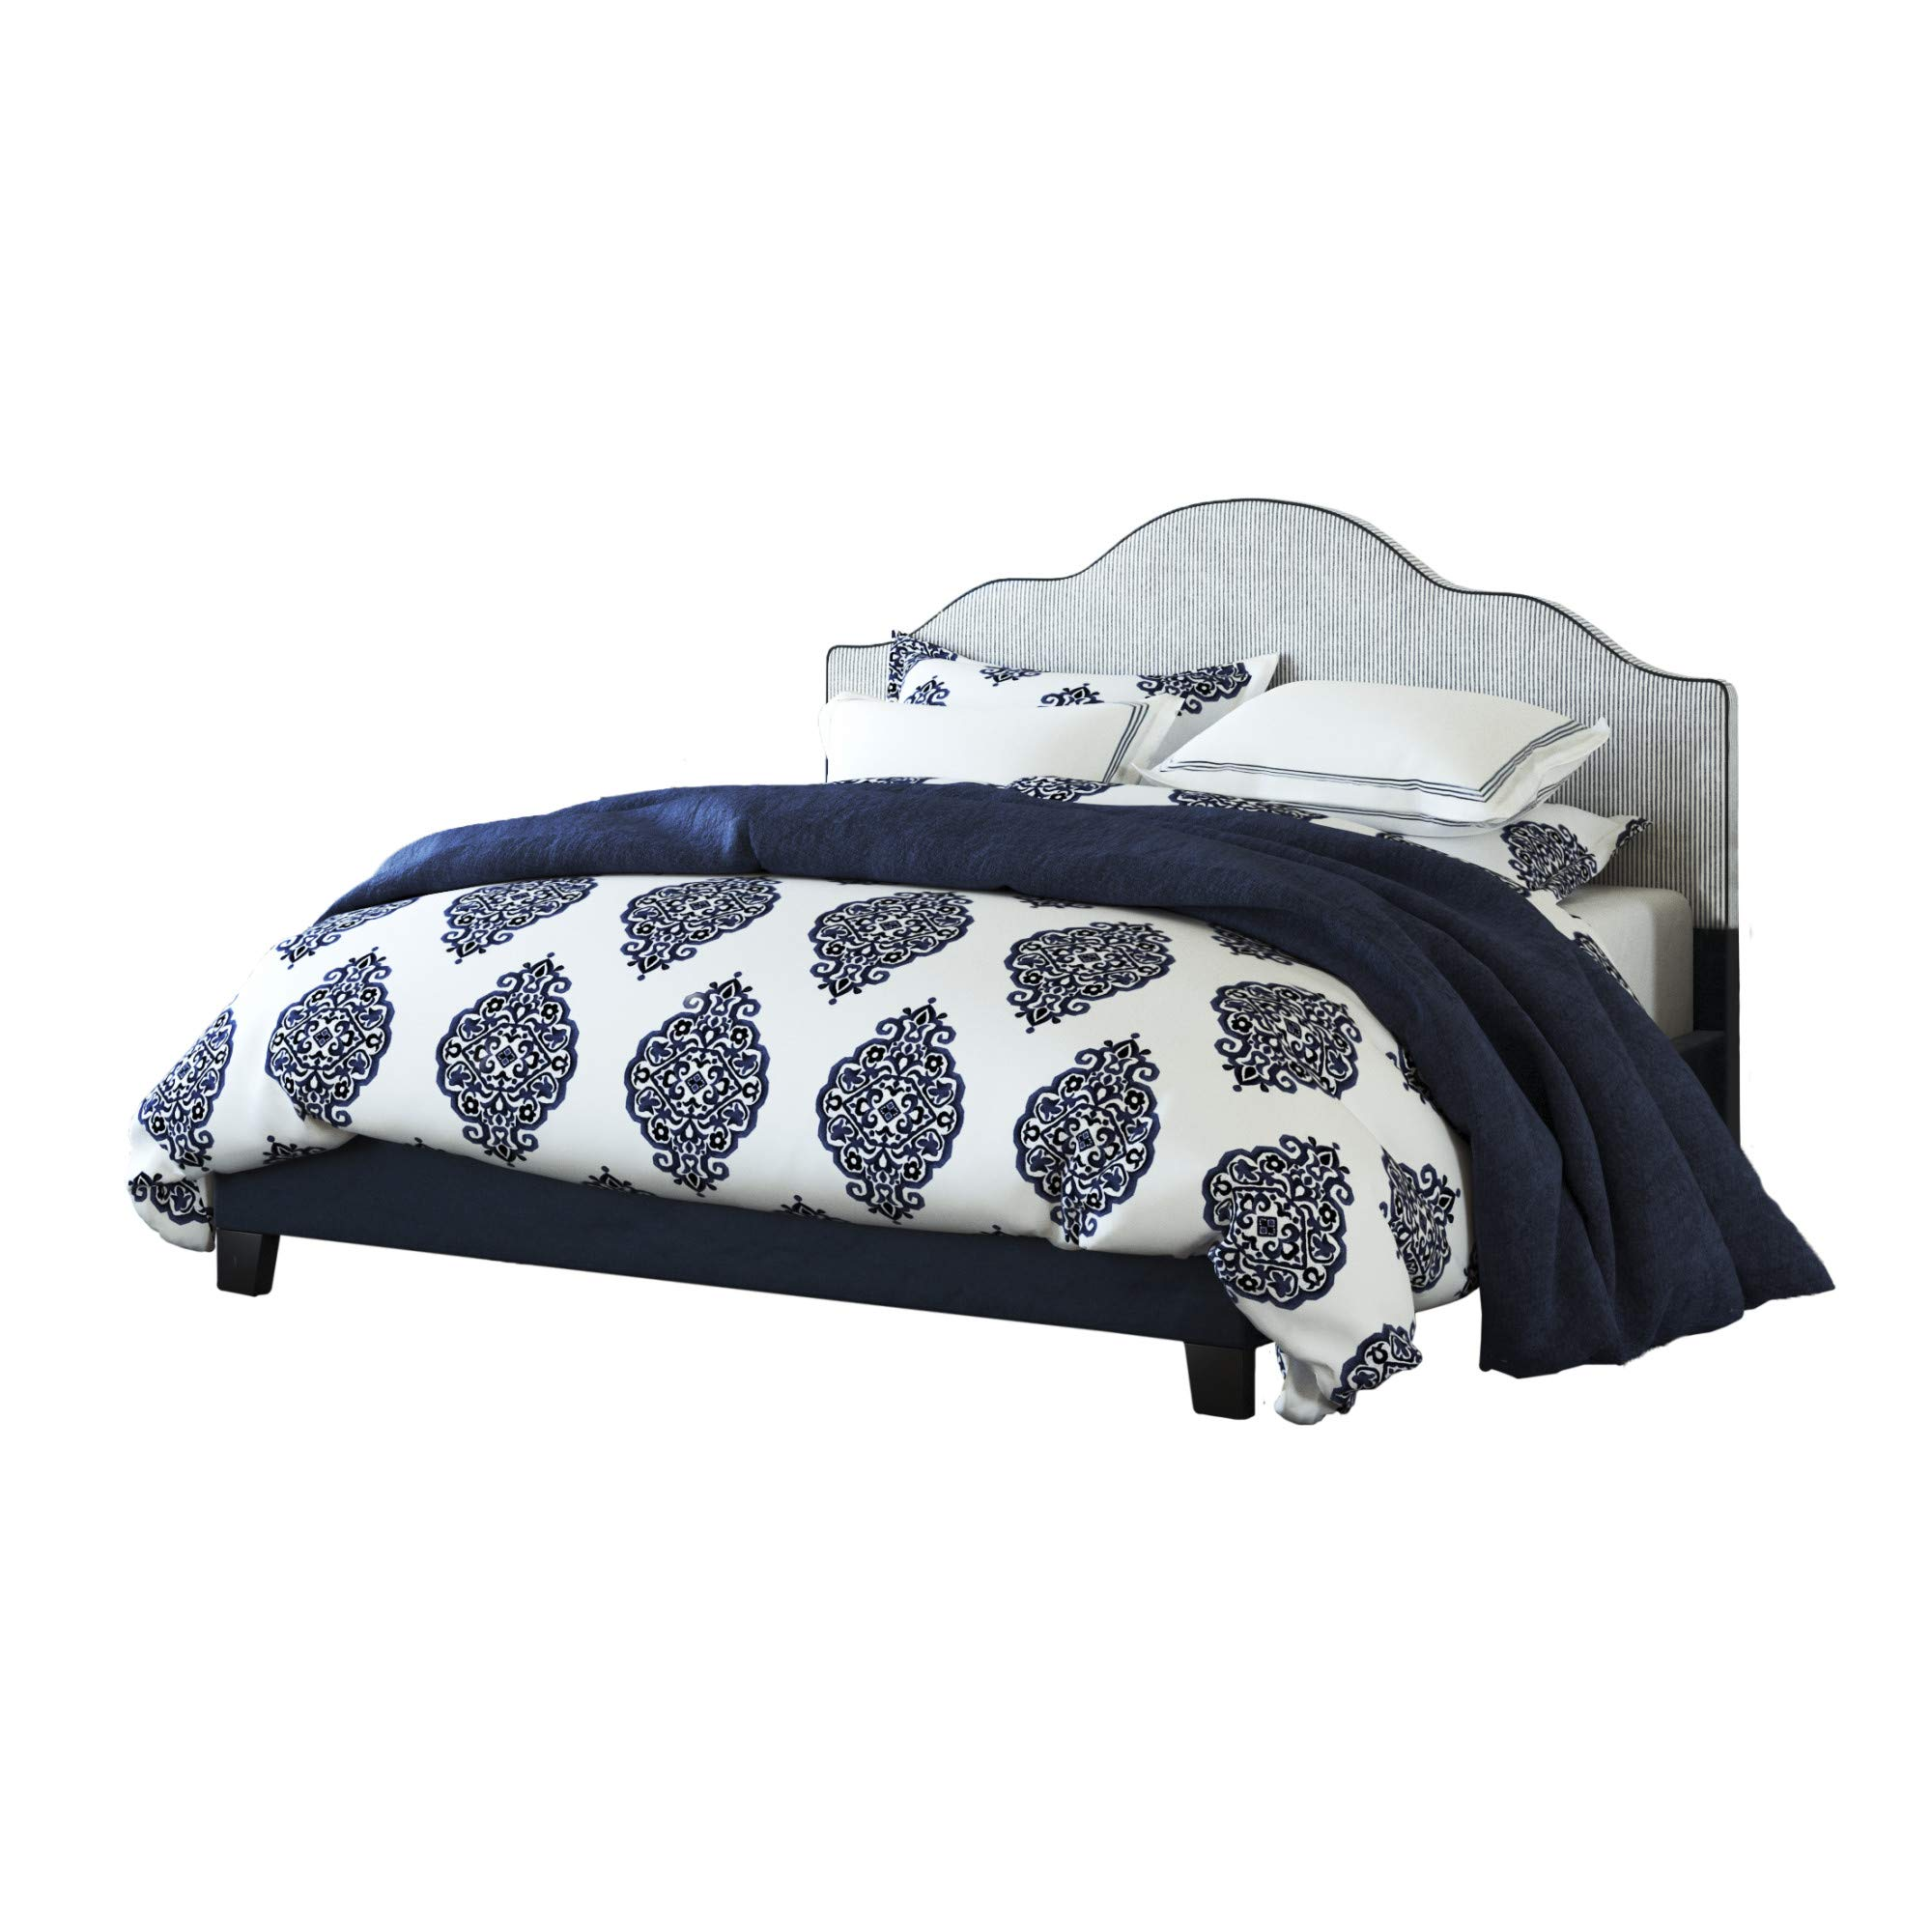 Embassy King Upholstered Bed in Midnight Blue with Arch Curved, Padded Headboard, And Platform Style Base, by Artum Hill